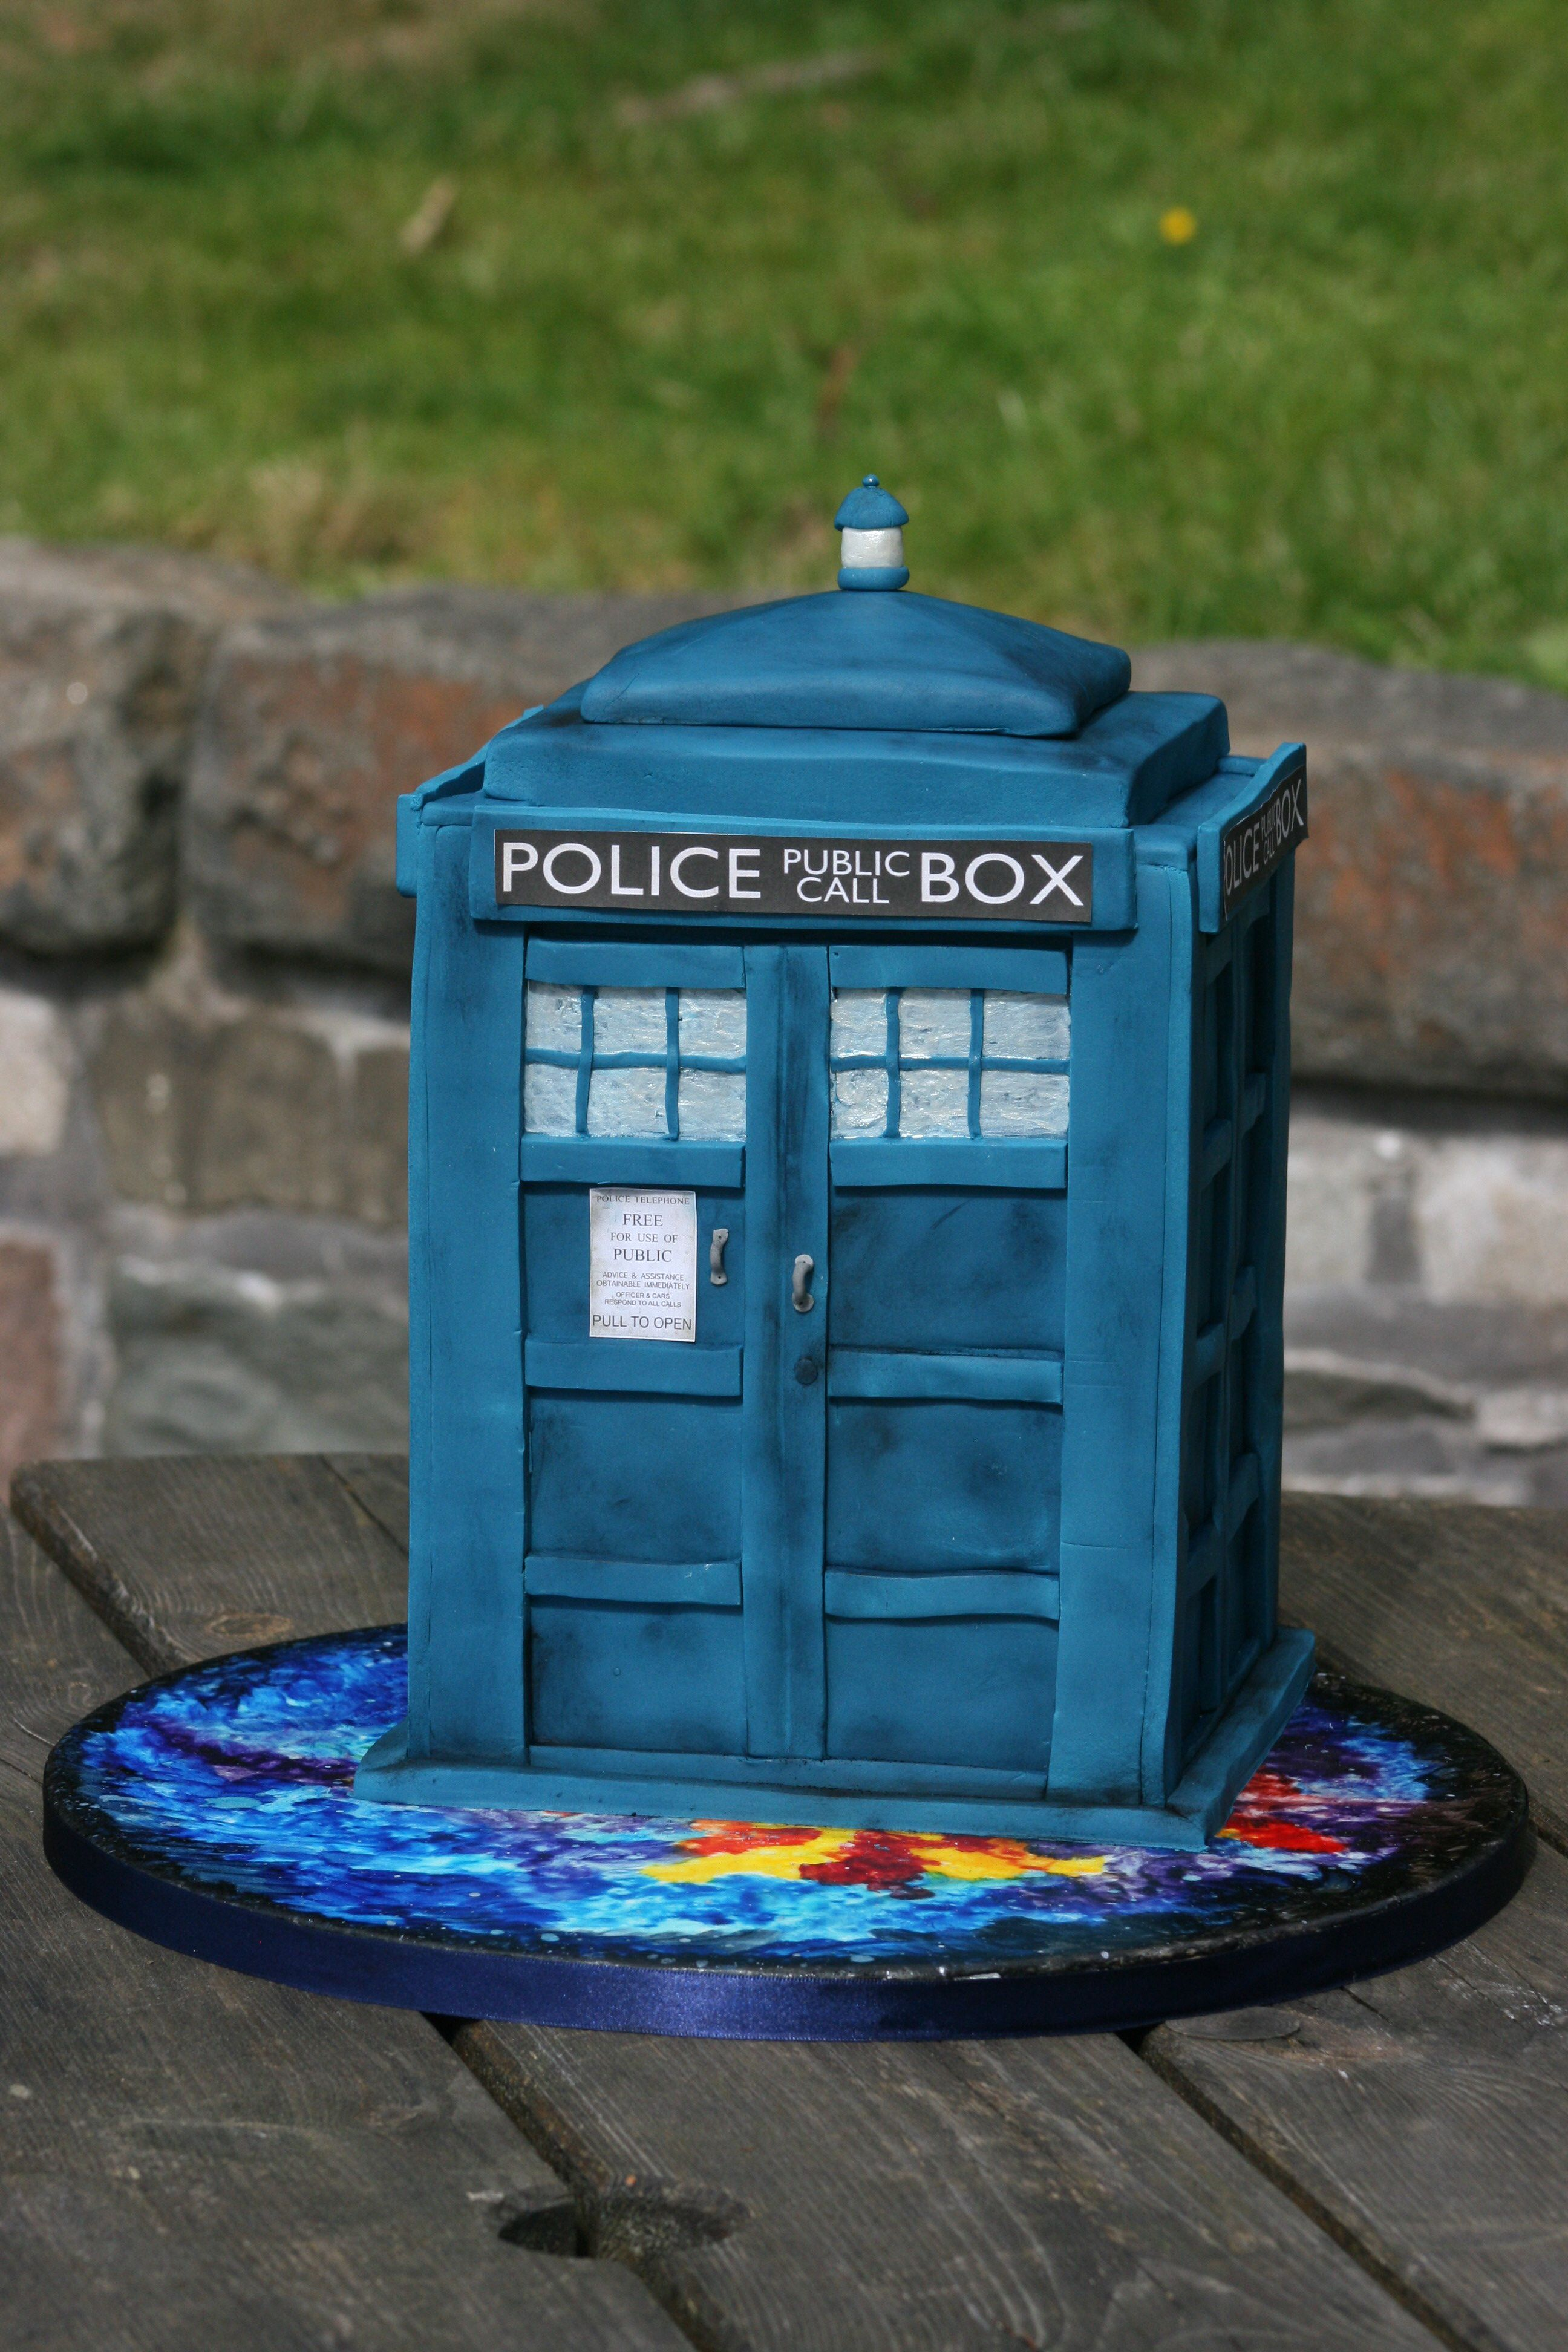 Cake: Dr Who TARDIS. This is based on David Tennant's (the tenth doctor's) TARDIS. There are significant design differences between each doctor's tardis.